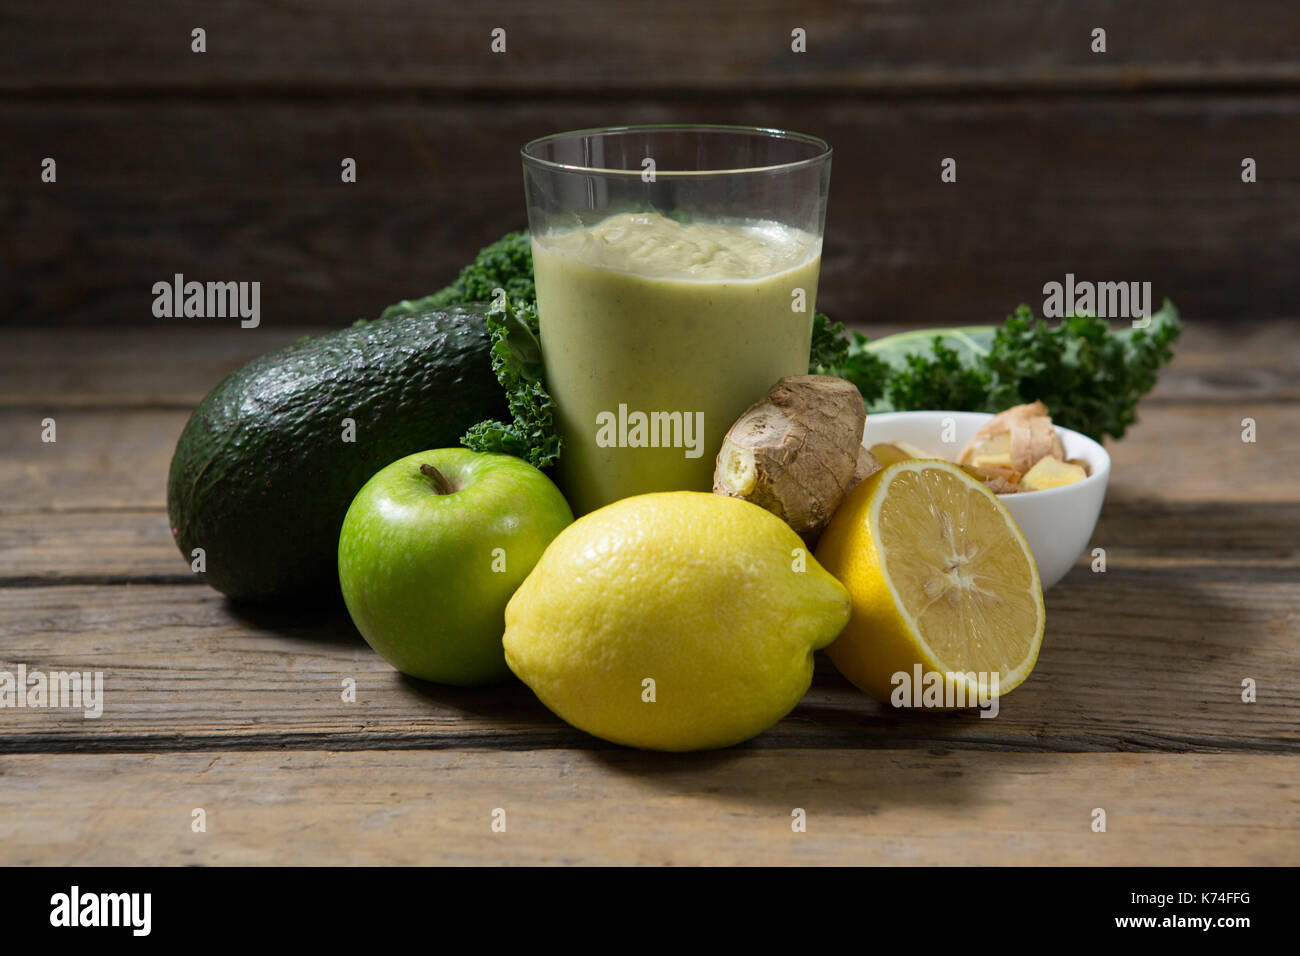 Various ingredients and paste on wooden table - Stock Image